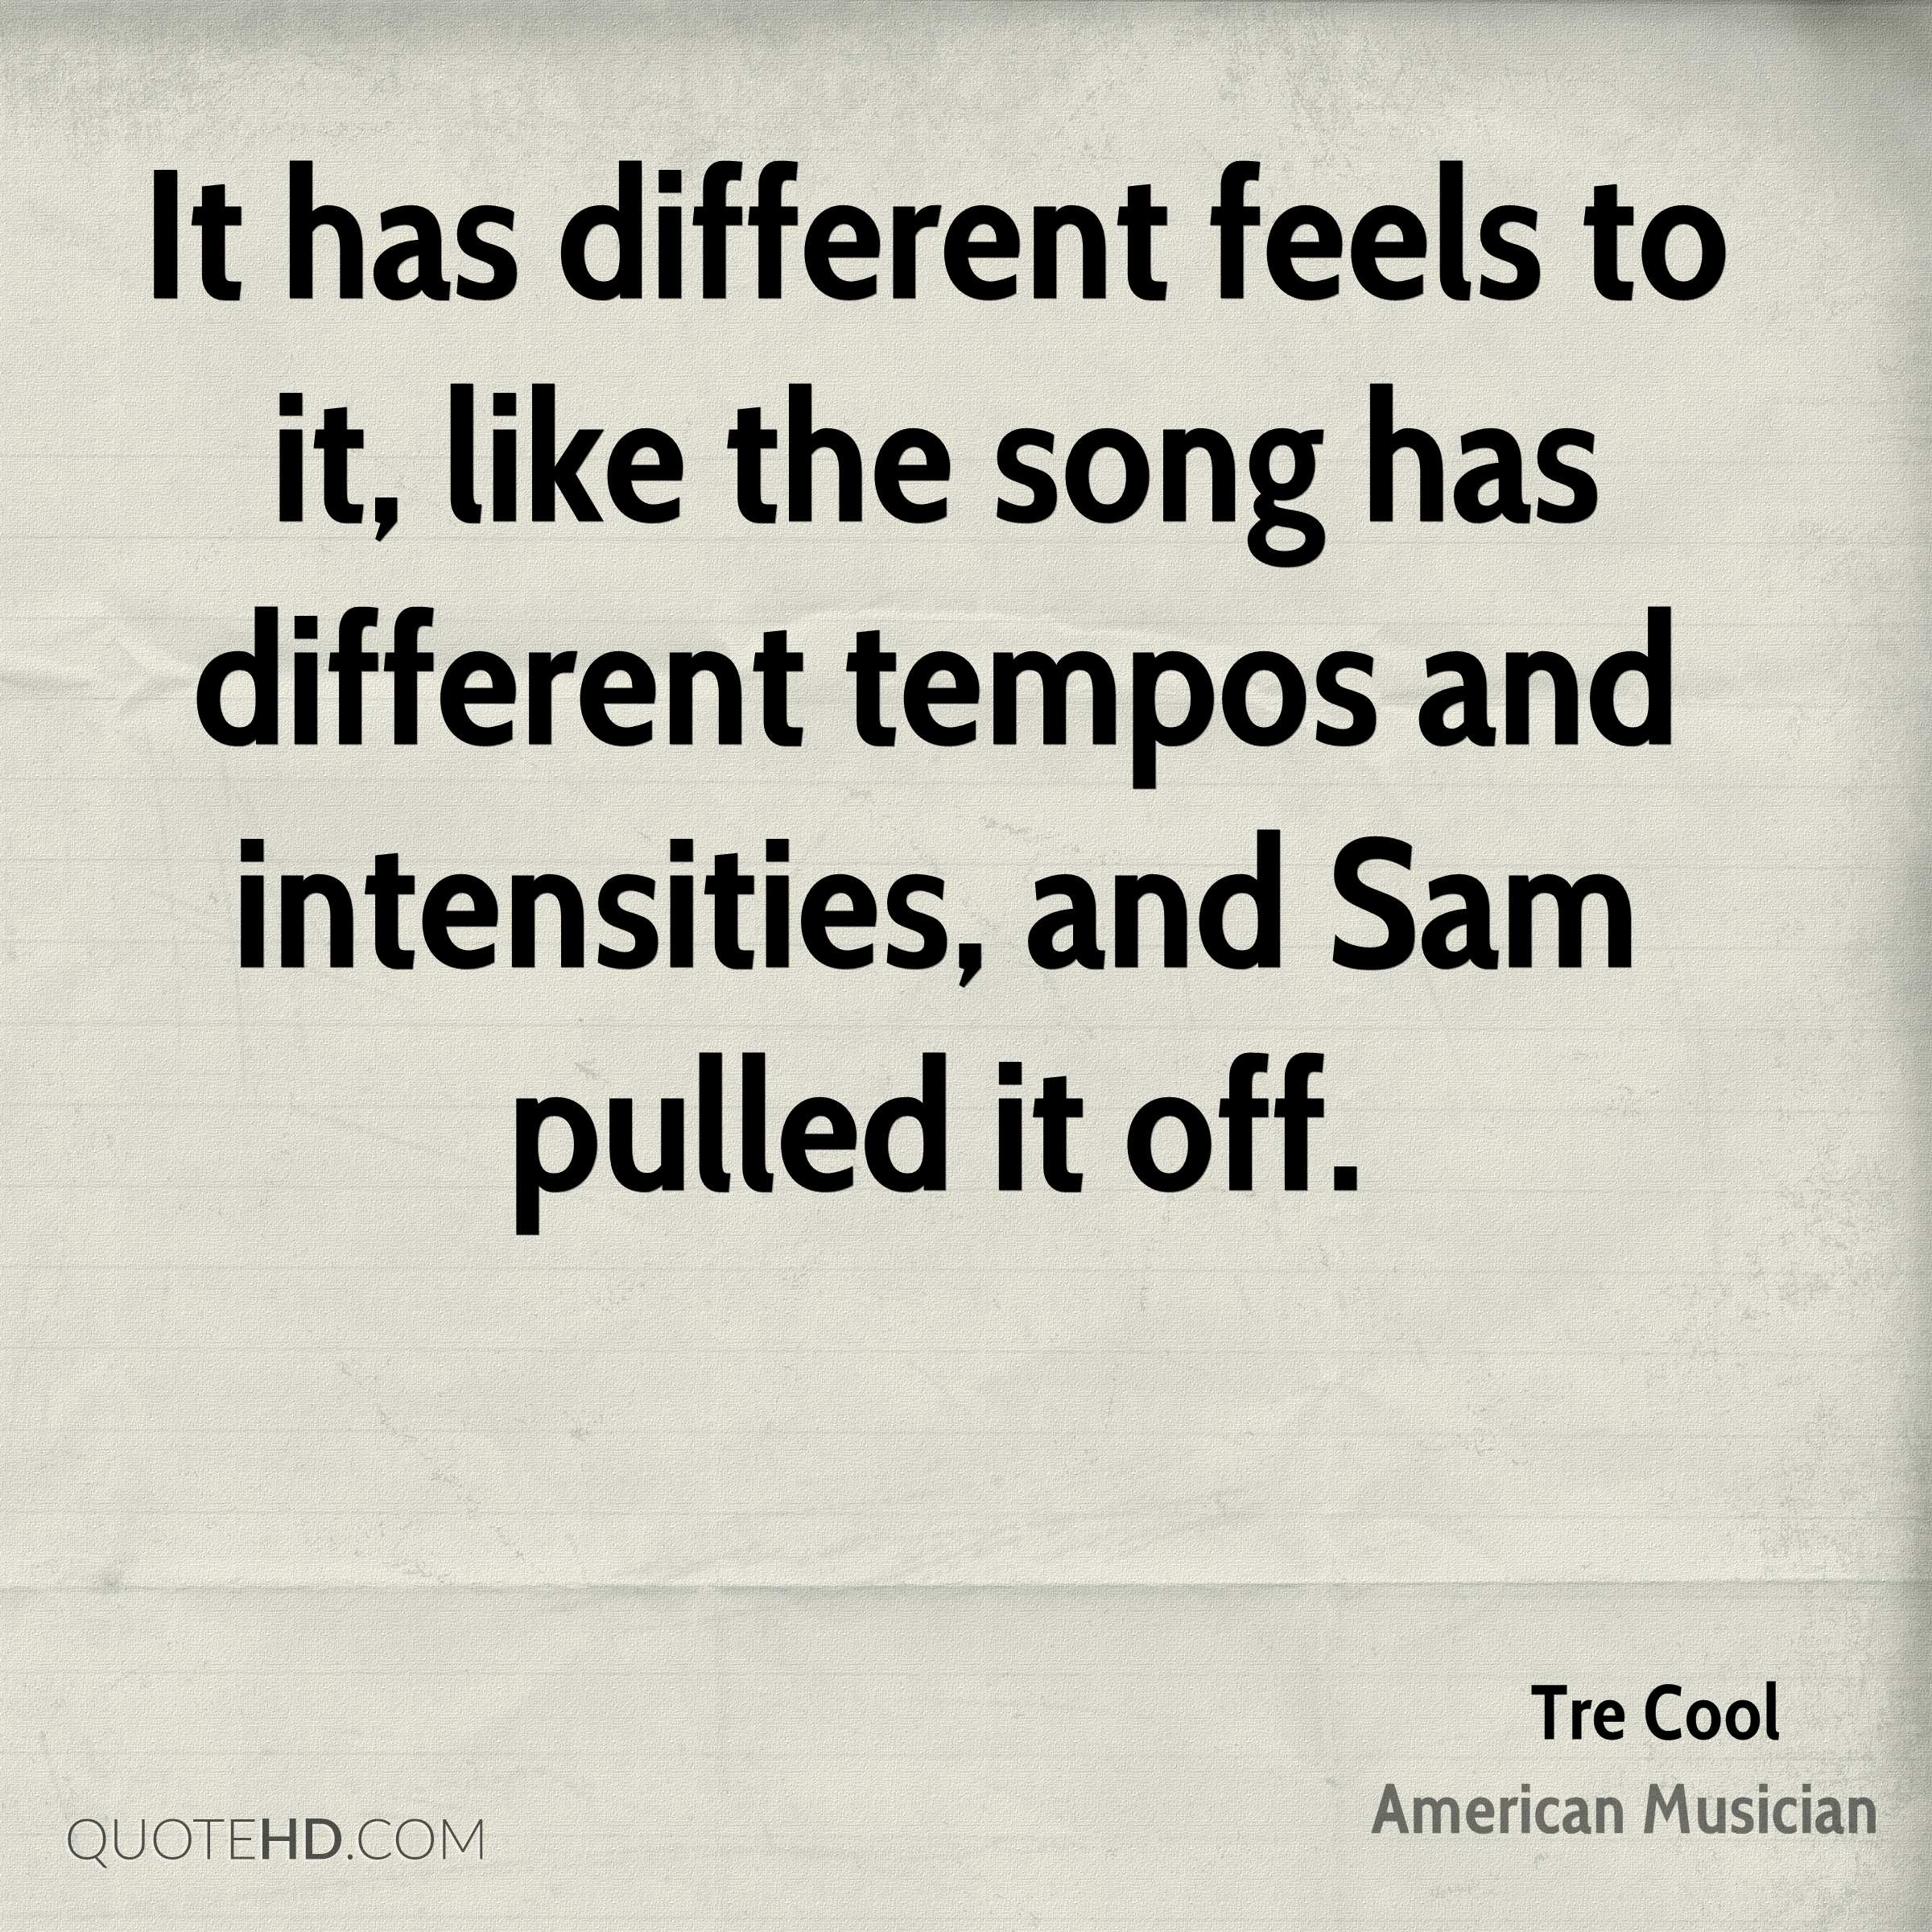 It has different feels to it, like the song has different tempos and intensities, and Sam pulled it off.